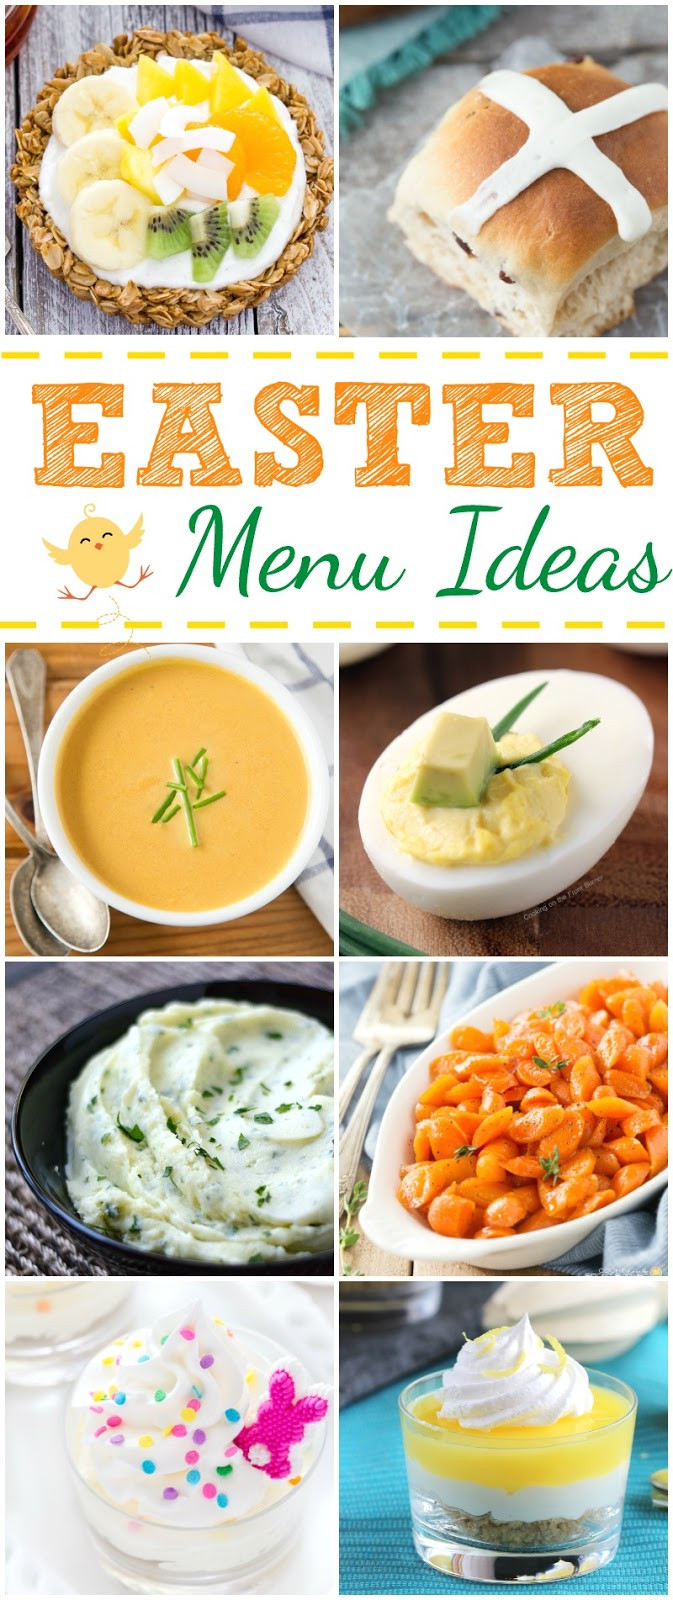 Suggestions for Easter Dinner Menu 20 Ideas for Easter Menu Ideas